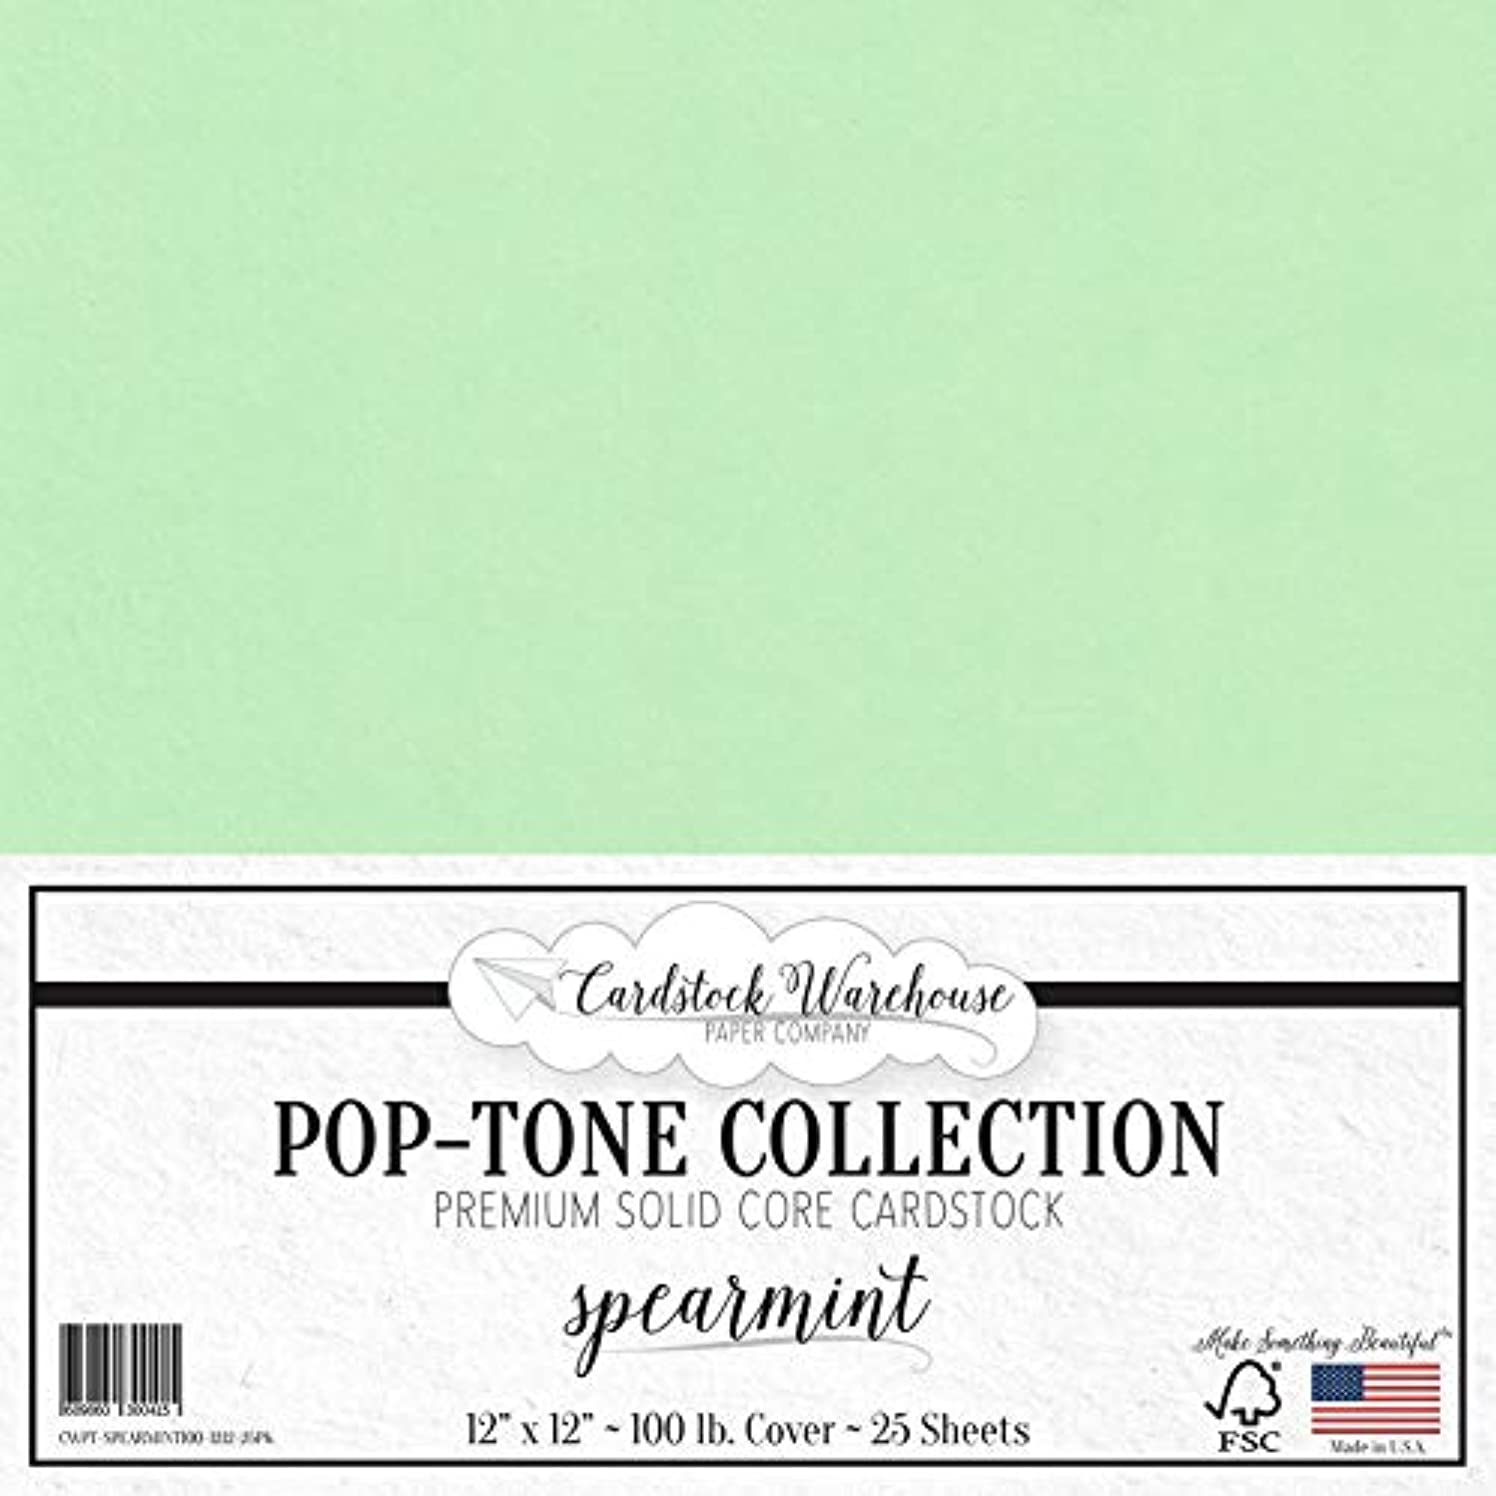 Spearmint Green Cardstock Paper - 12 x 12 inch 100 lb. Heavyweight Cover - 25 Sheets from Cardstock Warehouse